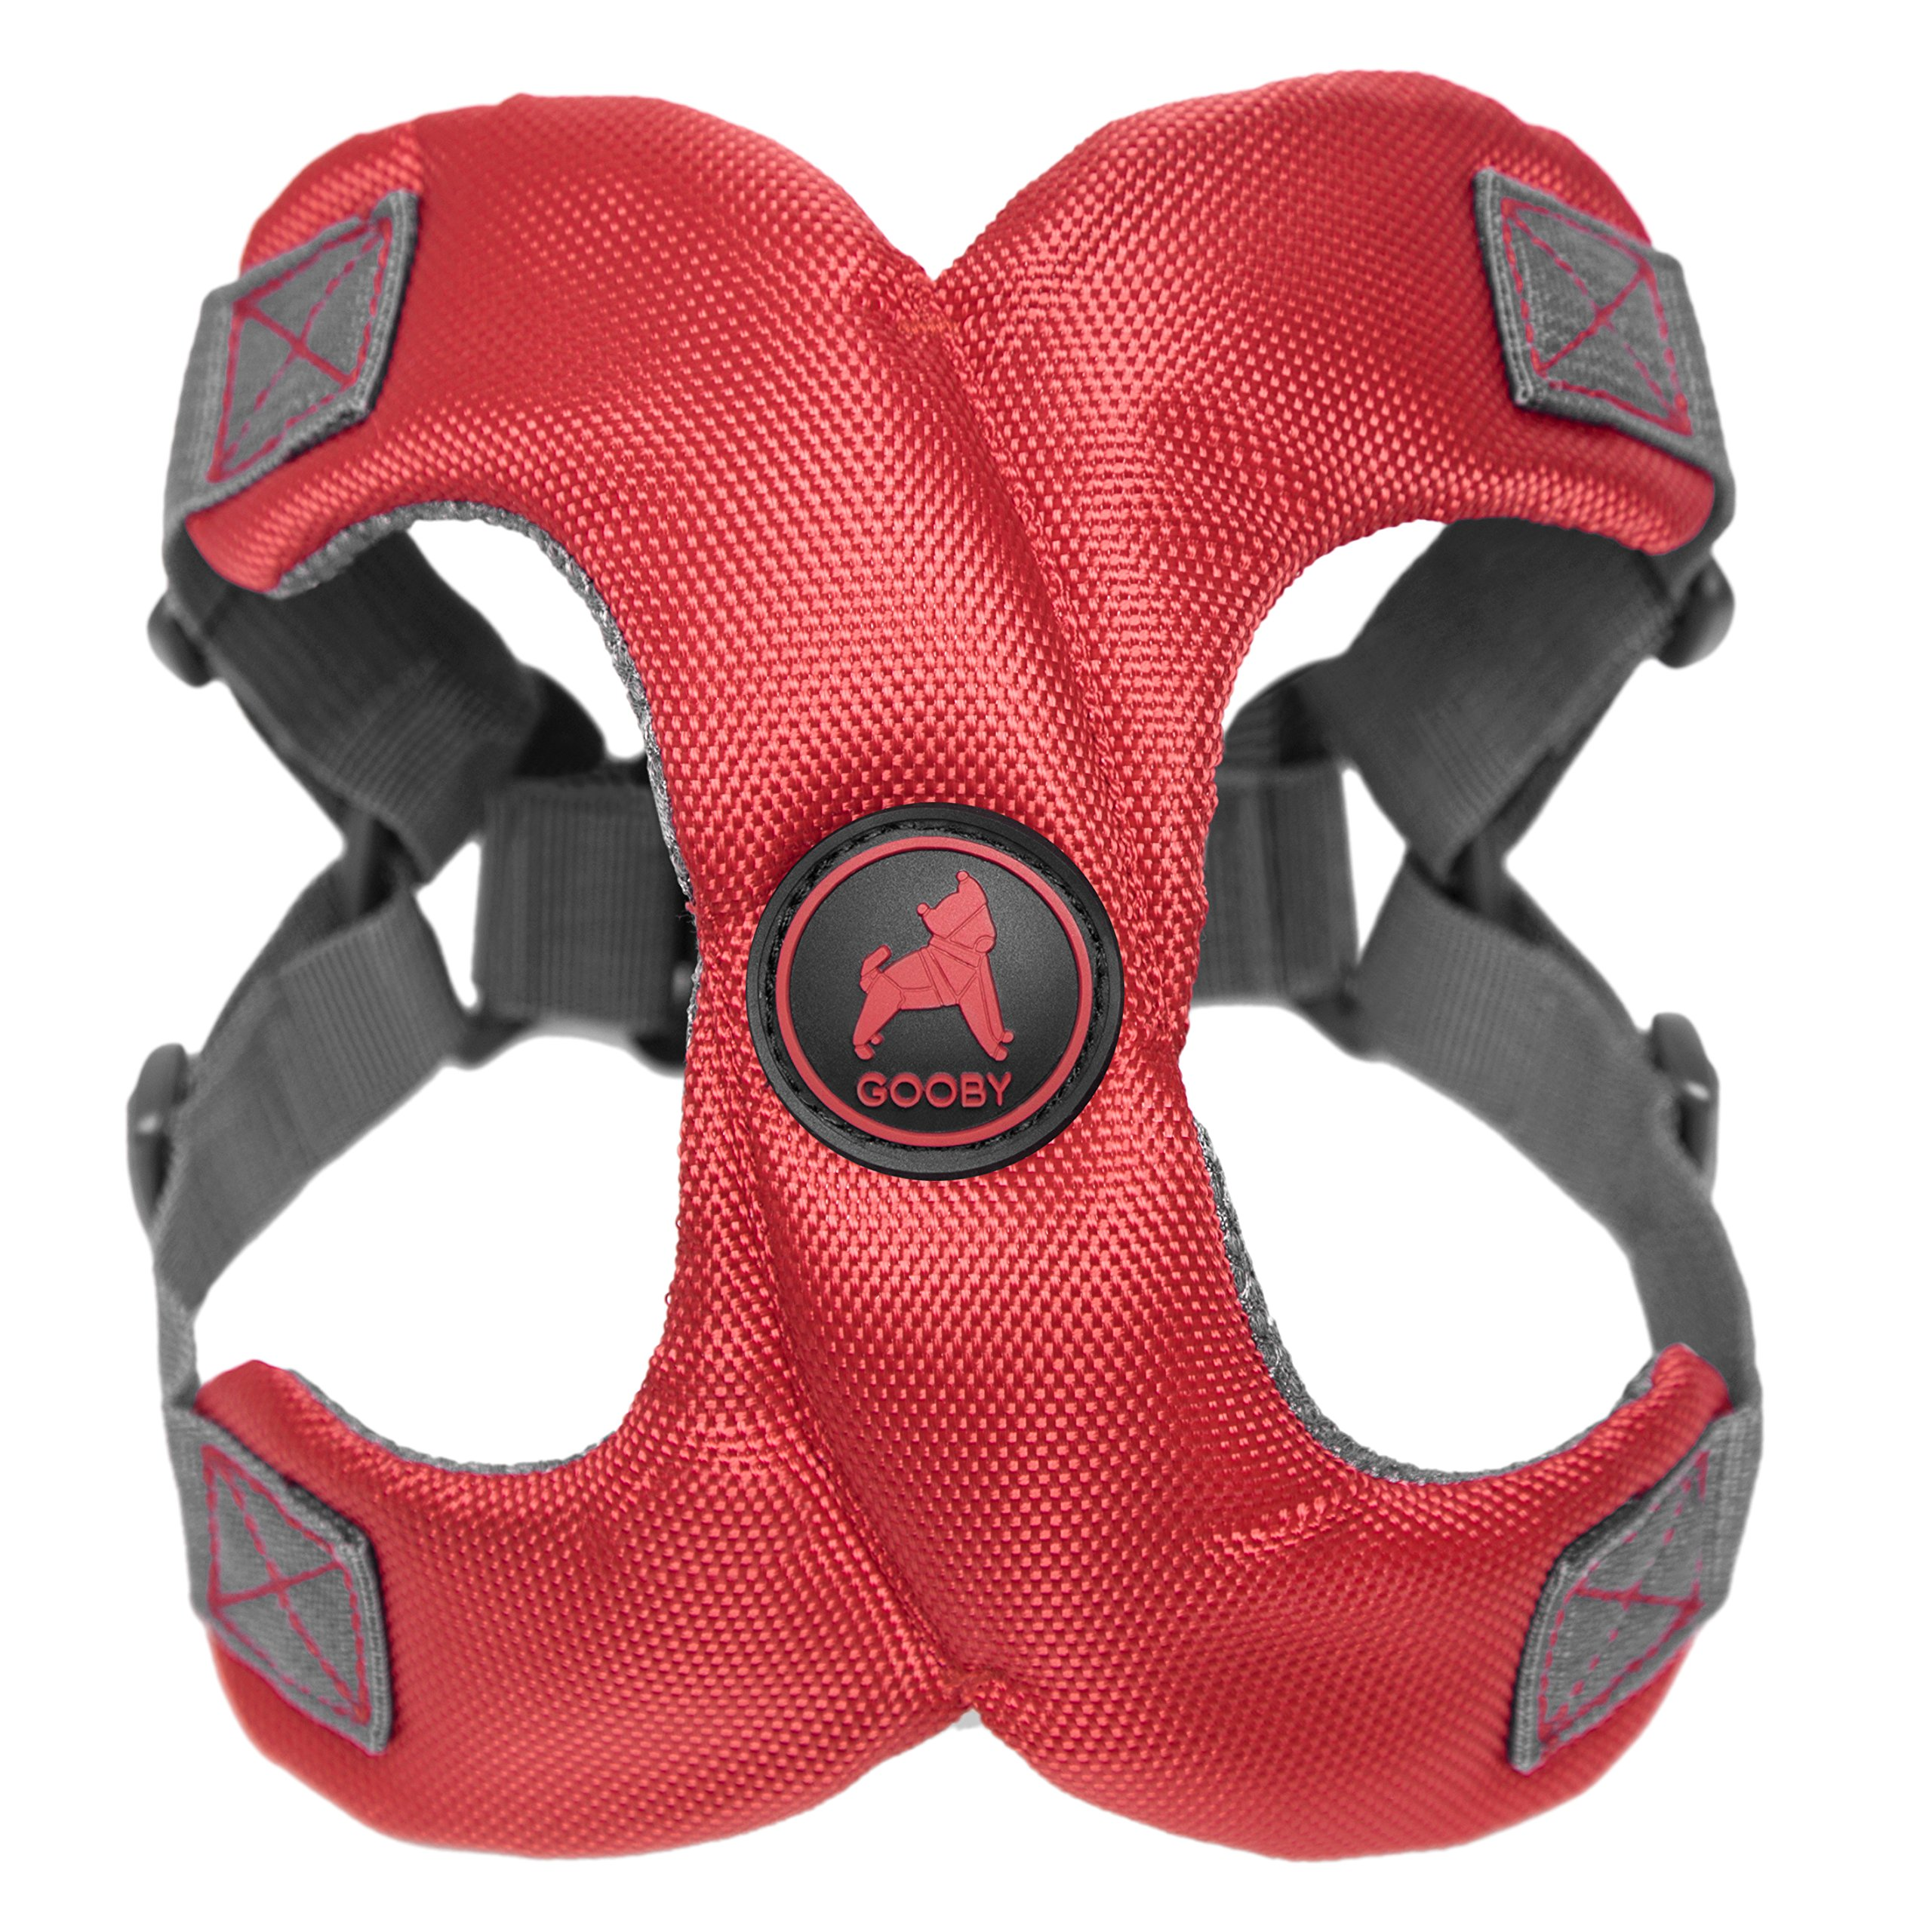 [Old Version] Gooby Escape Free Memory Foam Harness for Small Dogs, Red, Small